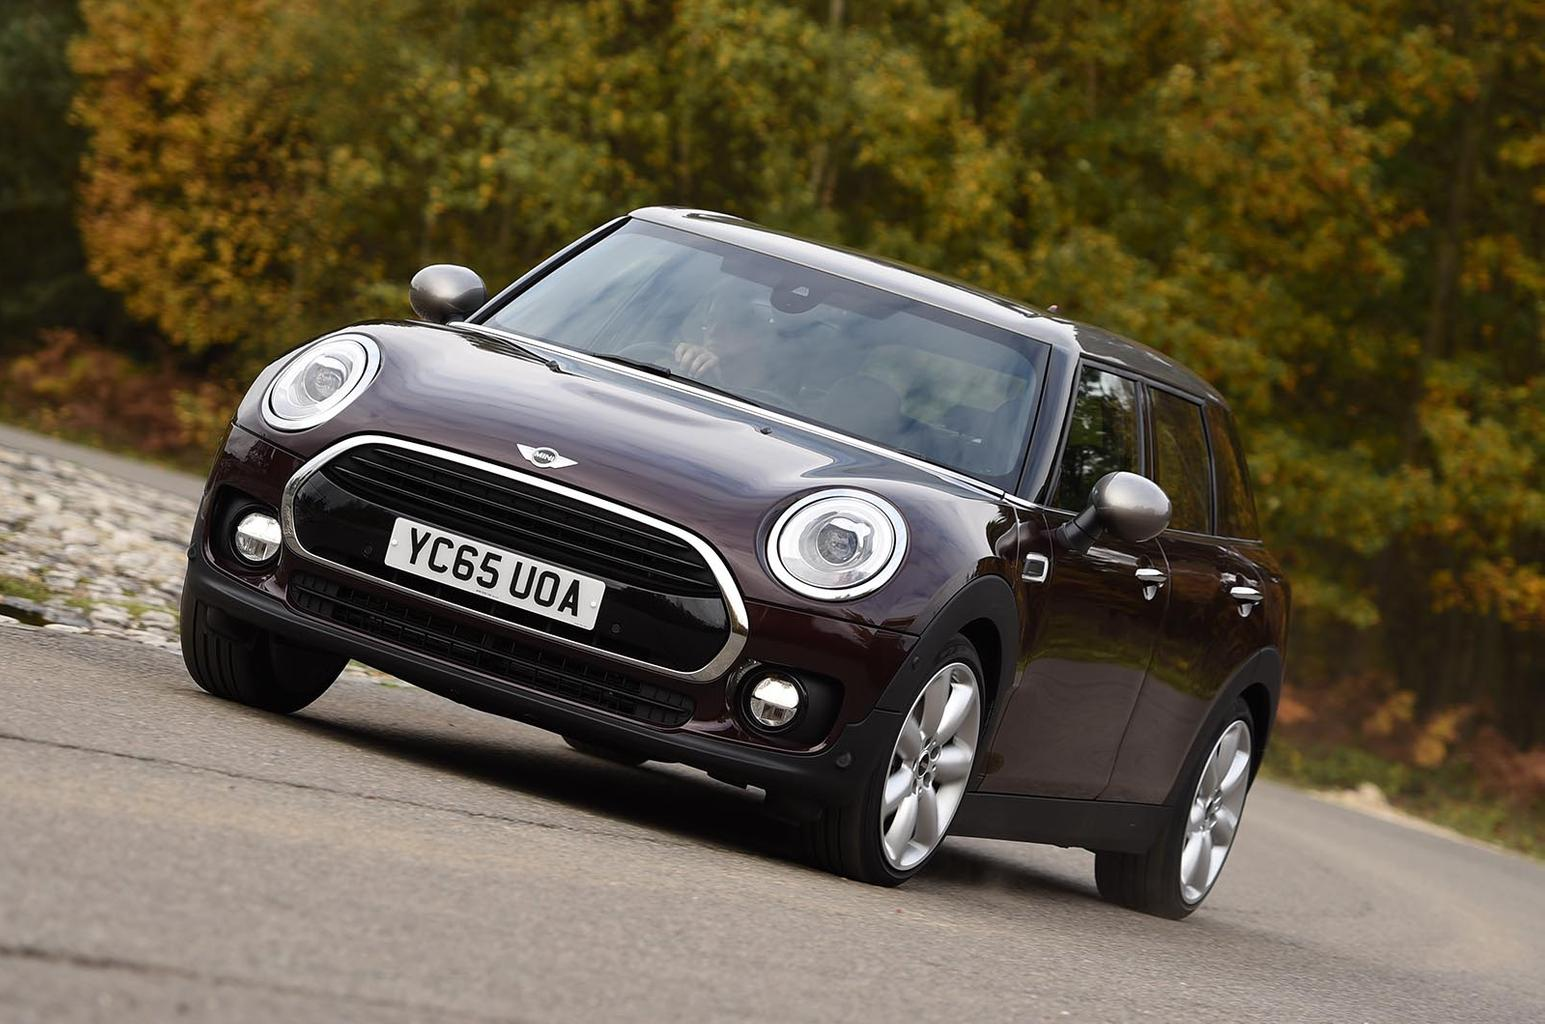 Used Audi A3 Sportback vs Mini Clubman